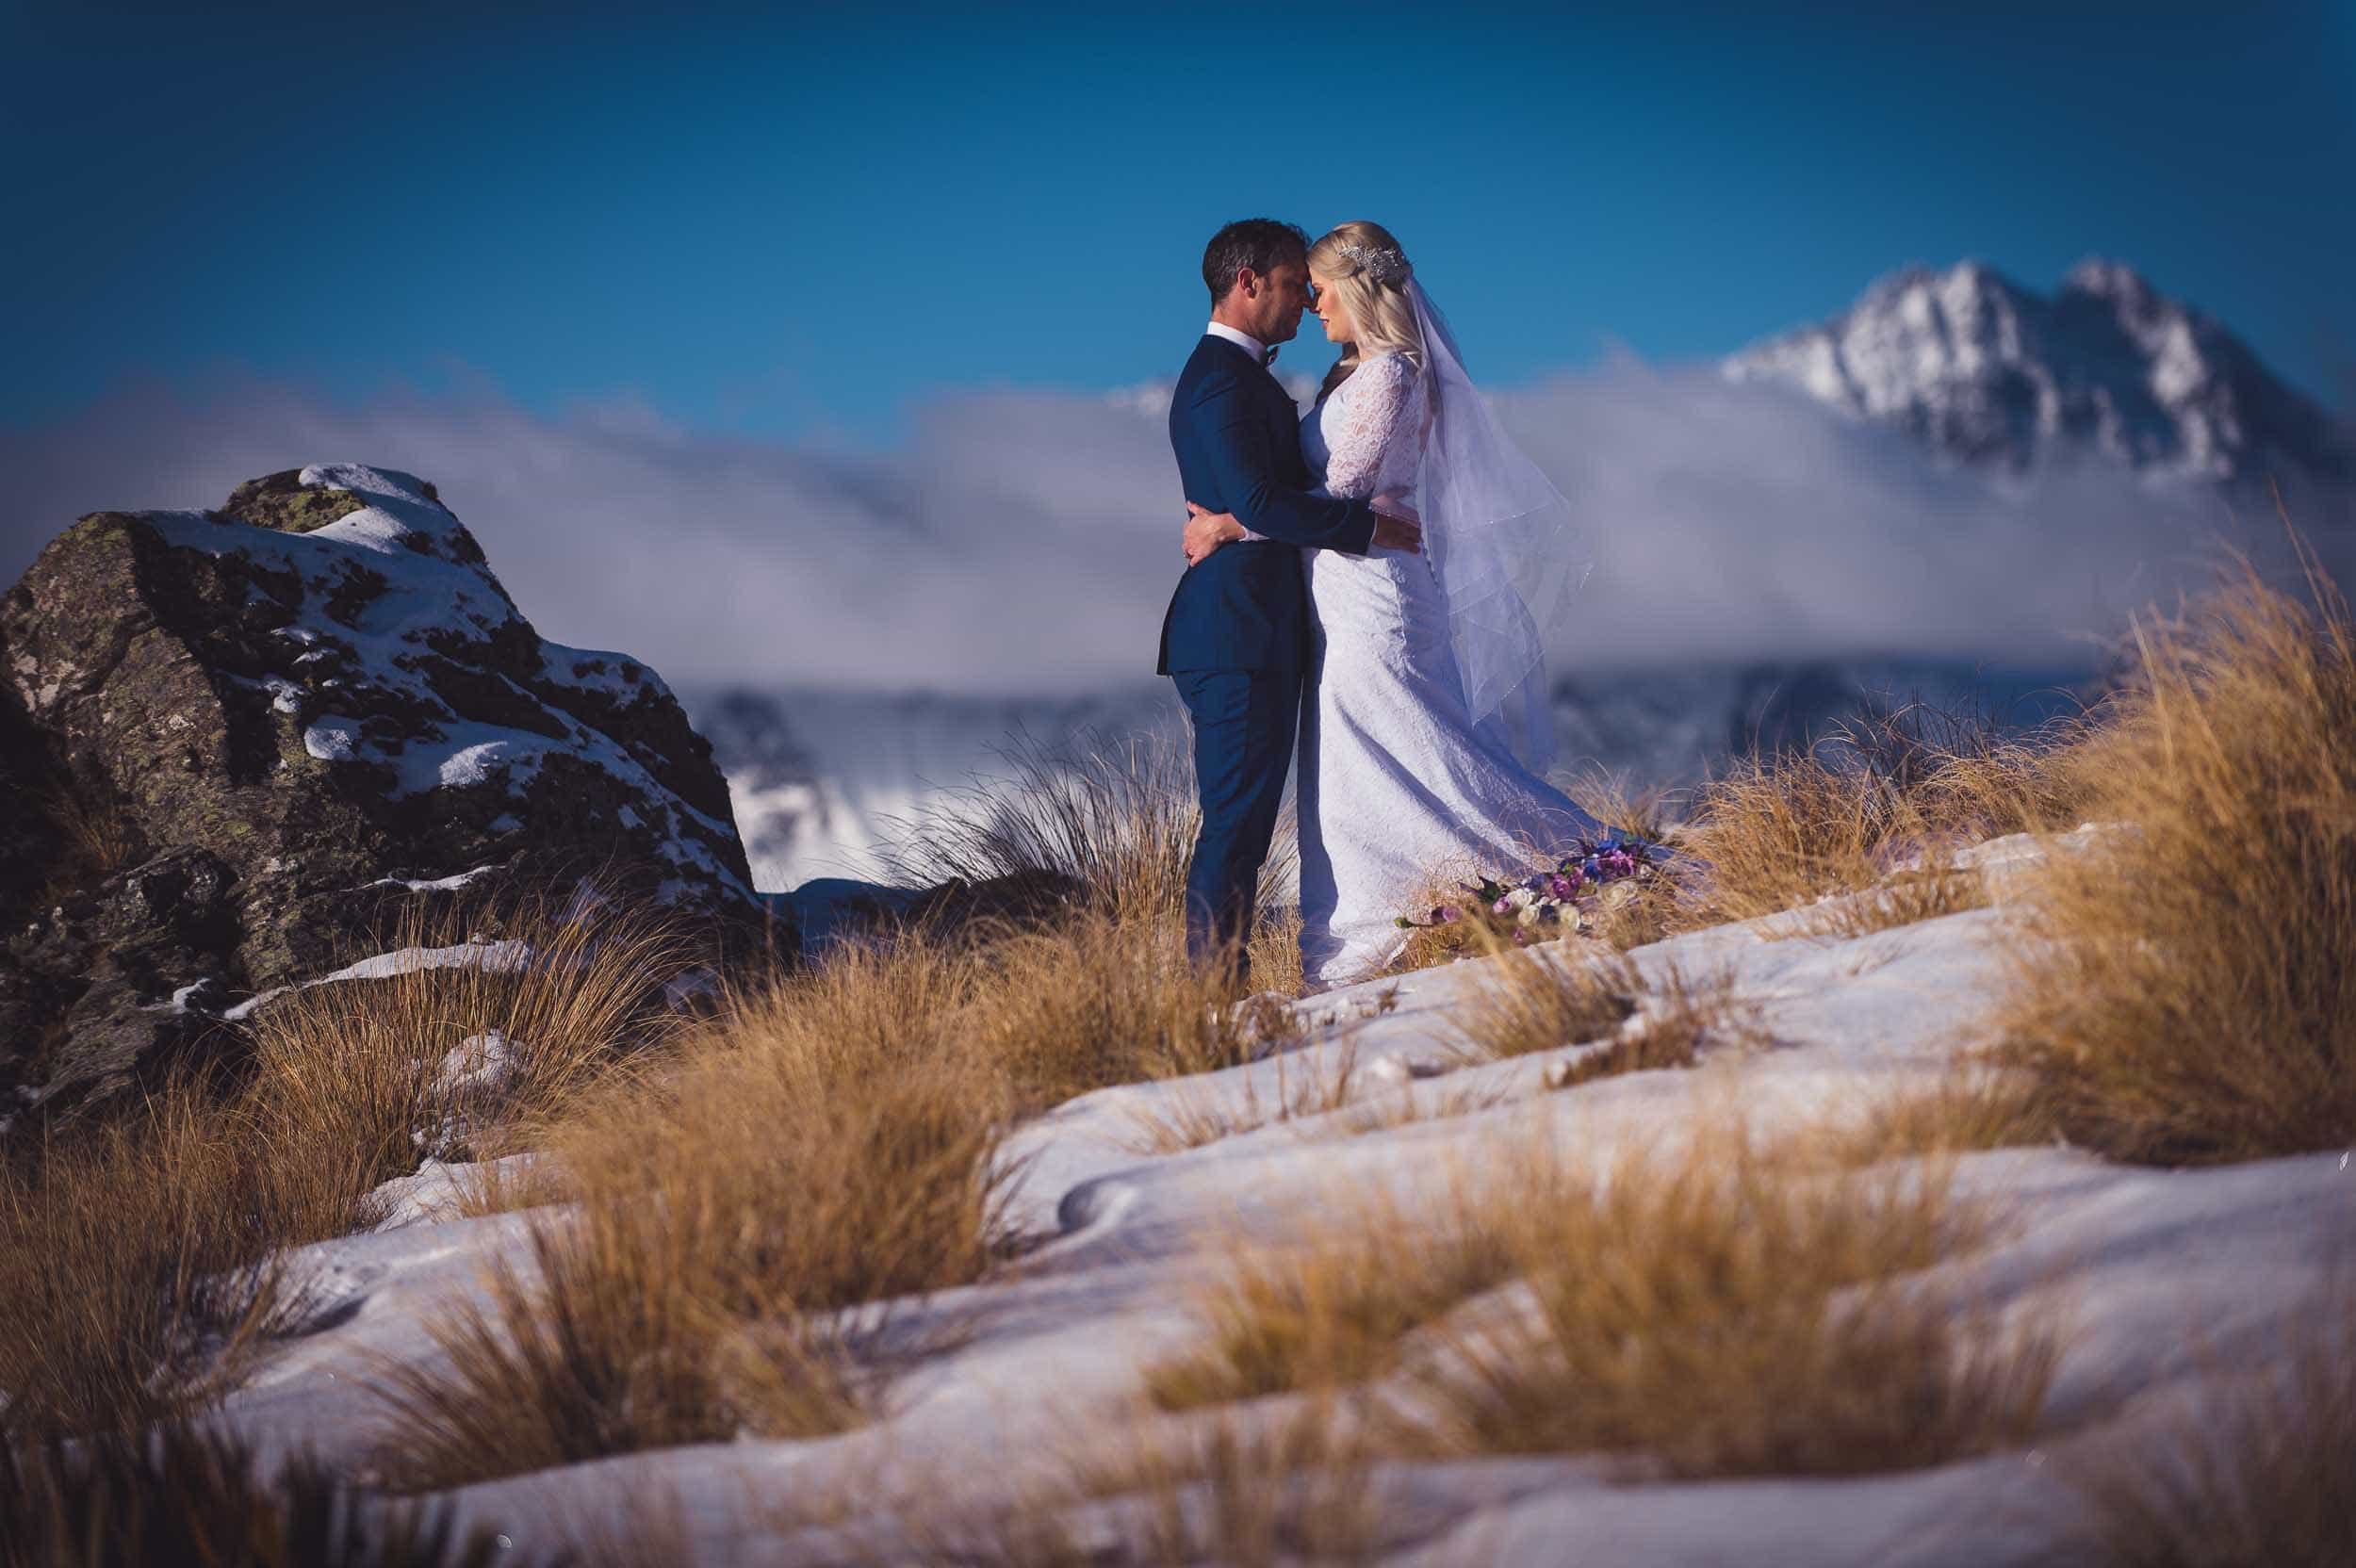 Queenstown wedding trends Kestin + Chris | Queenstown Midwinter Elopement fallon photography Bob's Cove Elopement